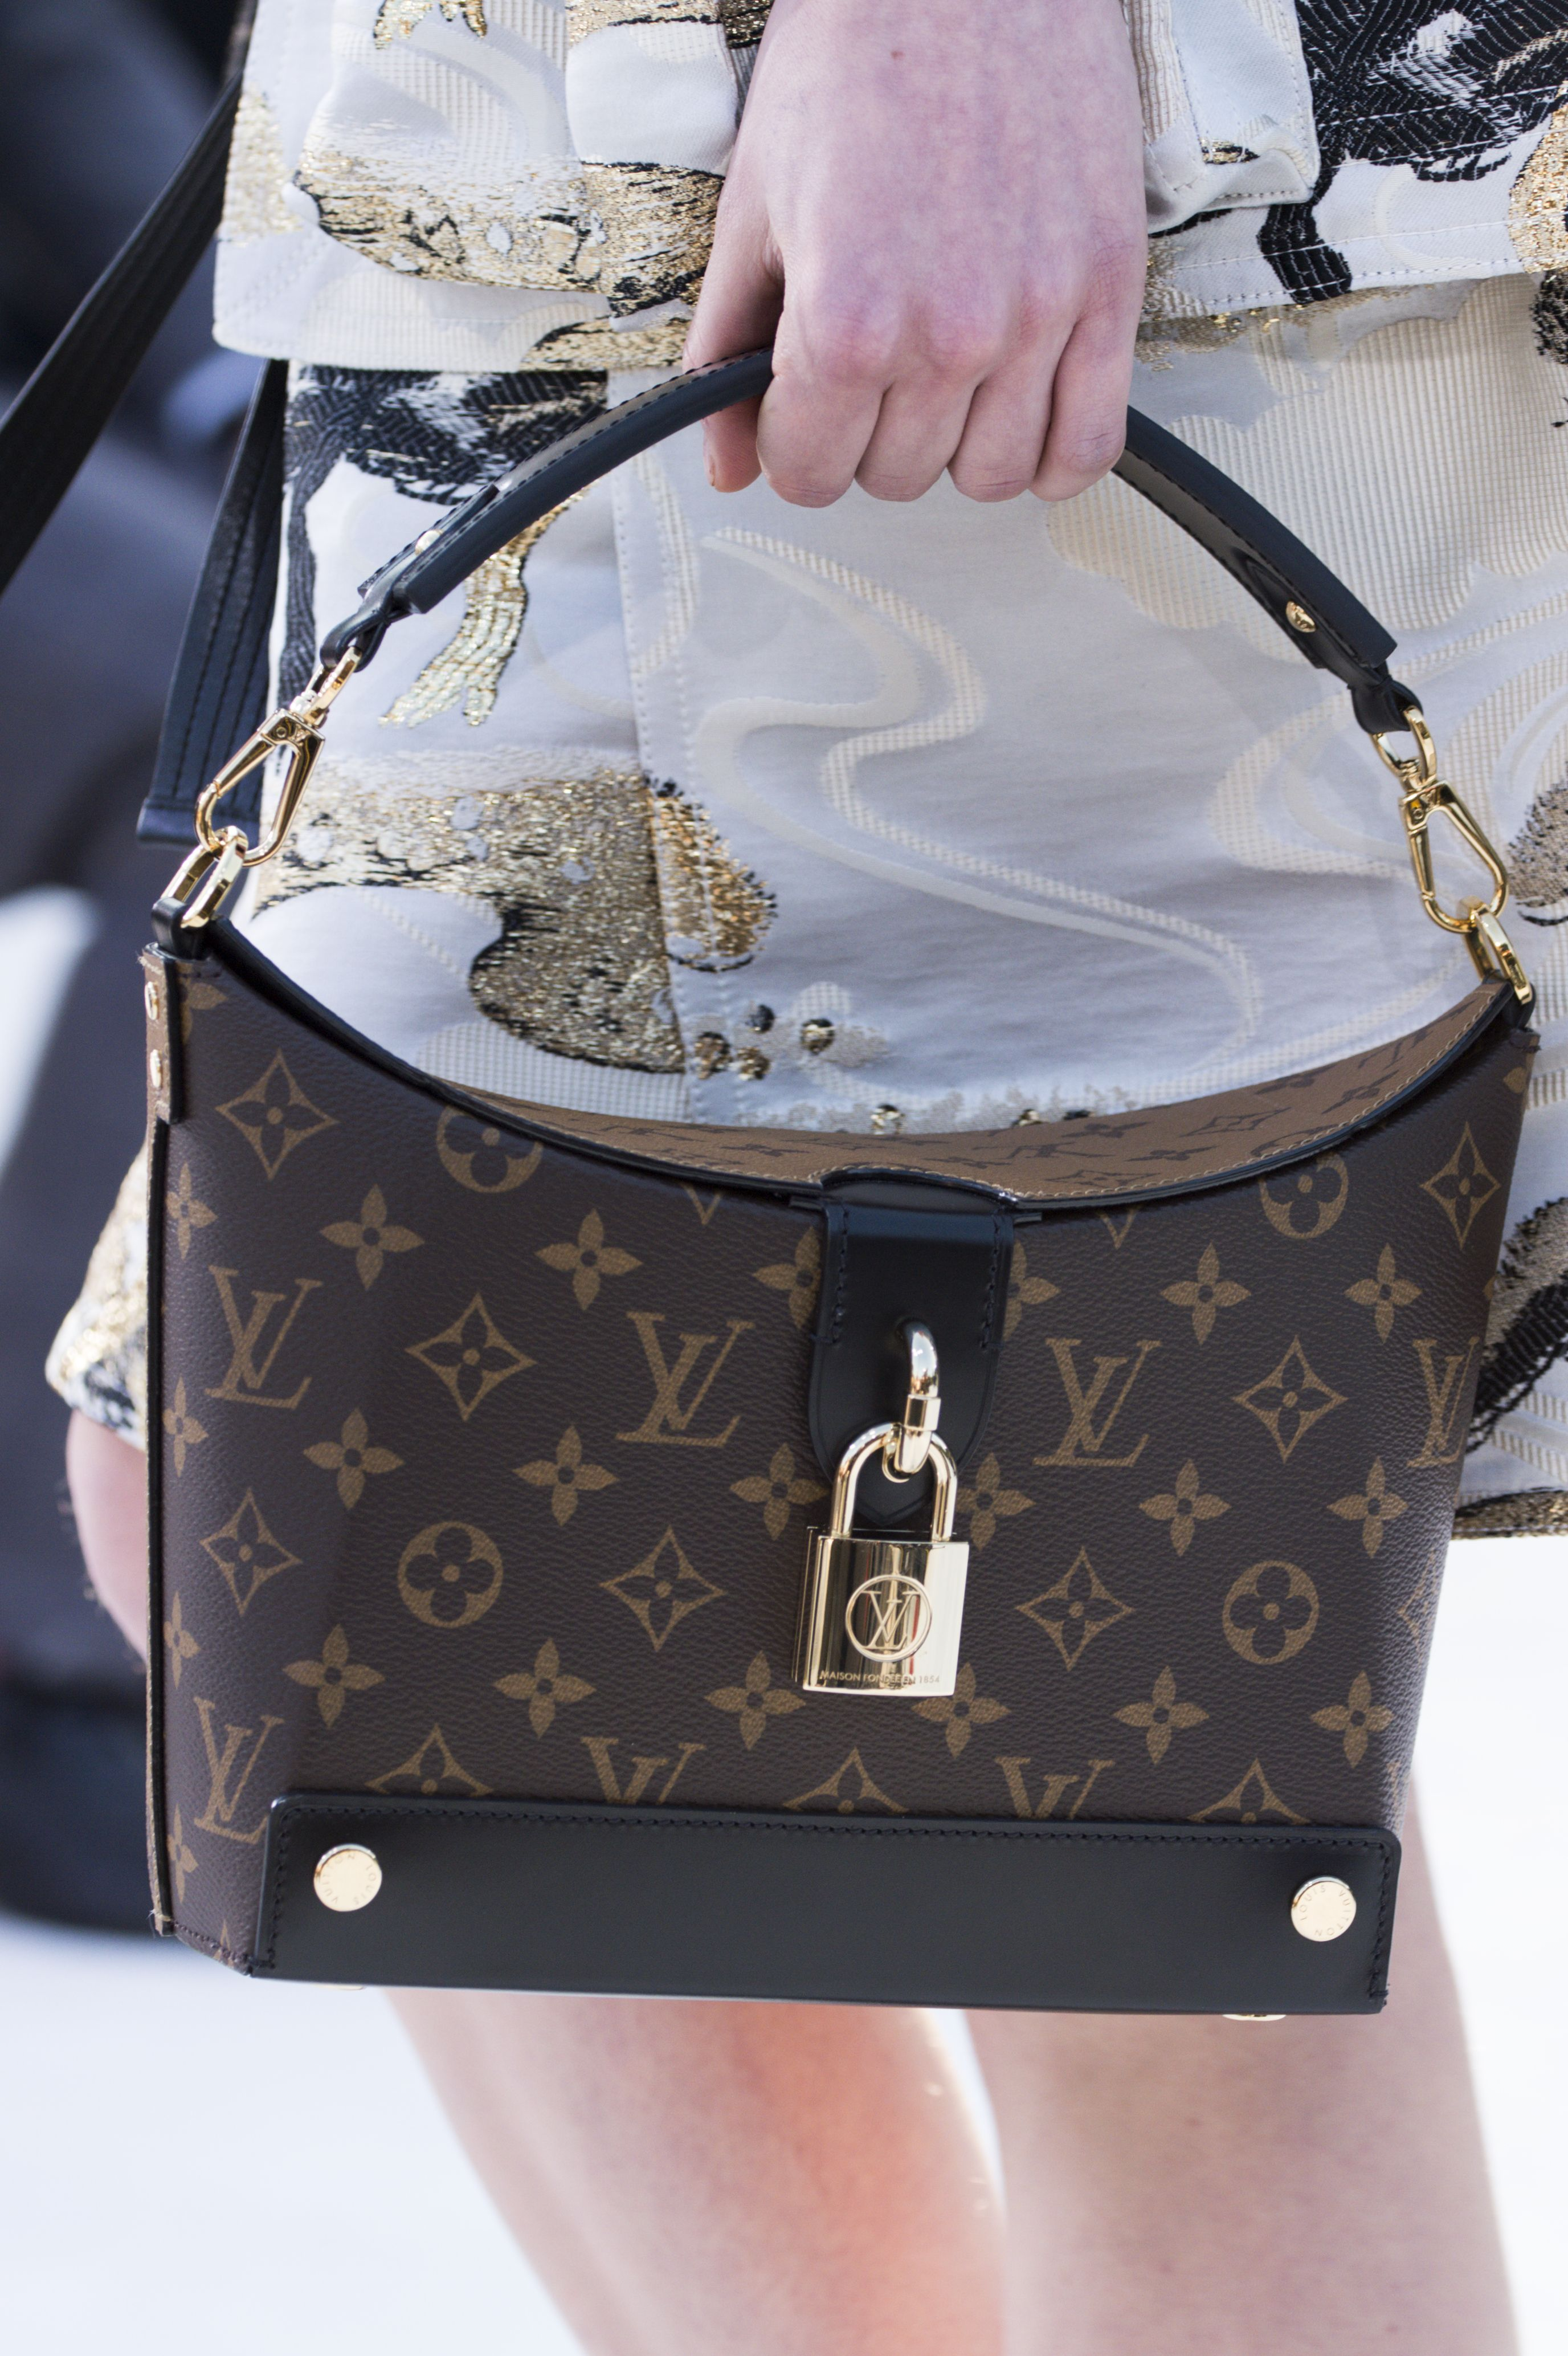 f954c2a9b8cef A closer look at a bag from the Louis Vuitton Cruise 2018 Fashion Show by  Nicolas Ghesquière, presented at the Miho Museum near Kyoto, Japan